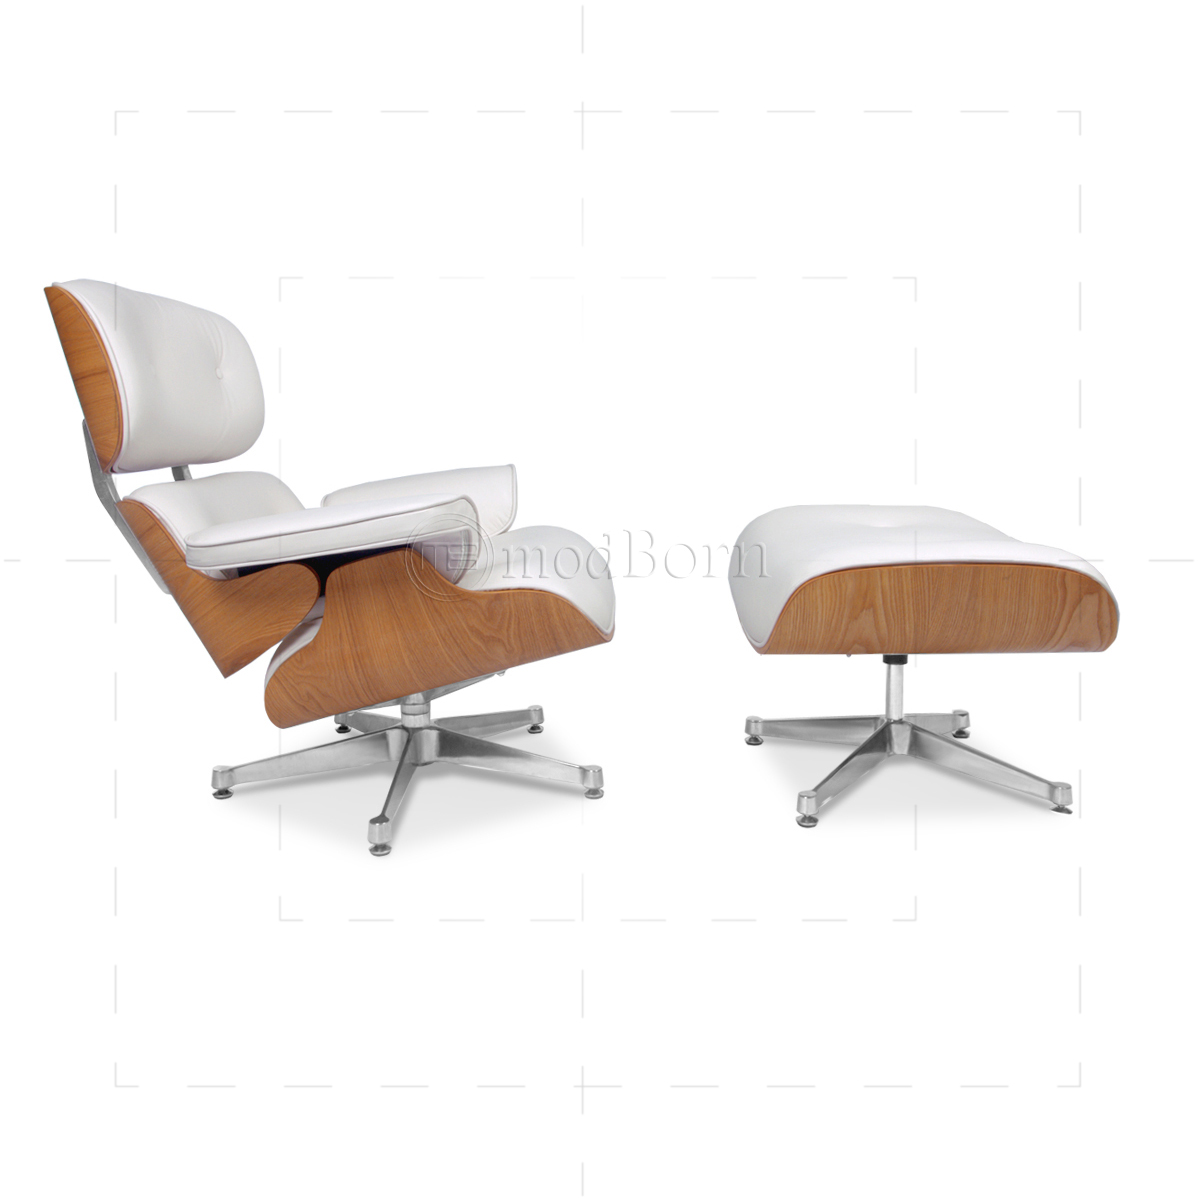 Modborn Furnitures Product Gallery - White leather lounge chair